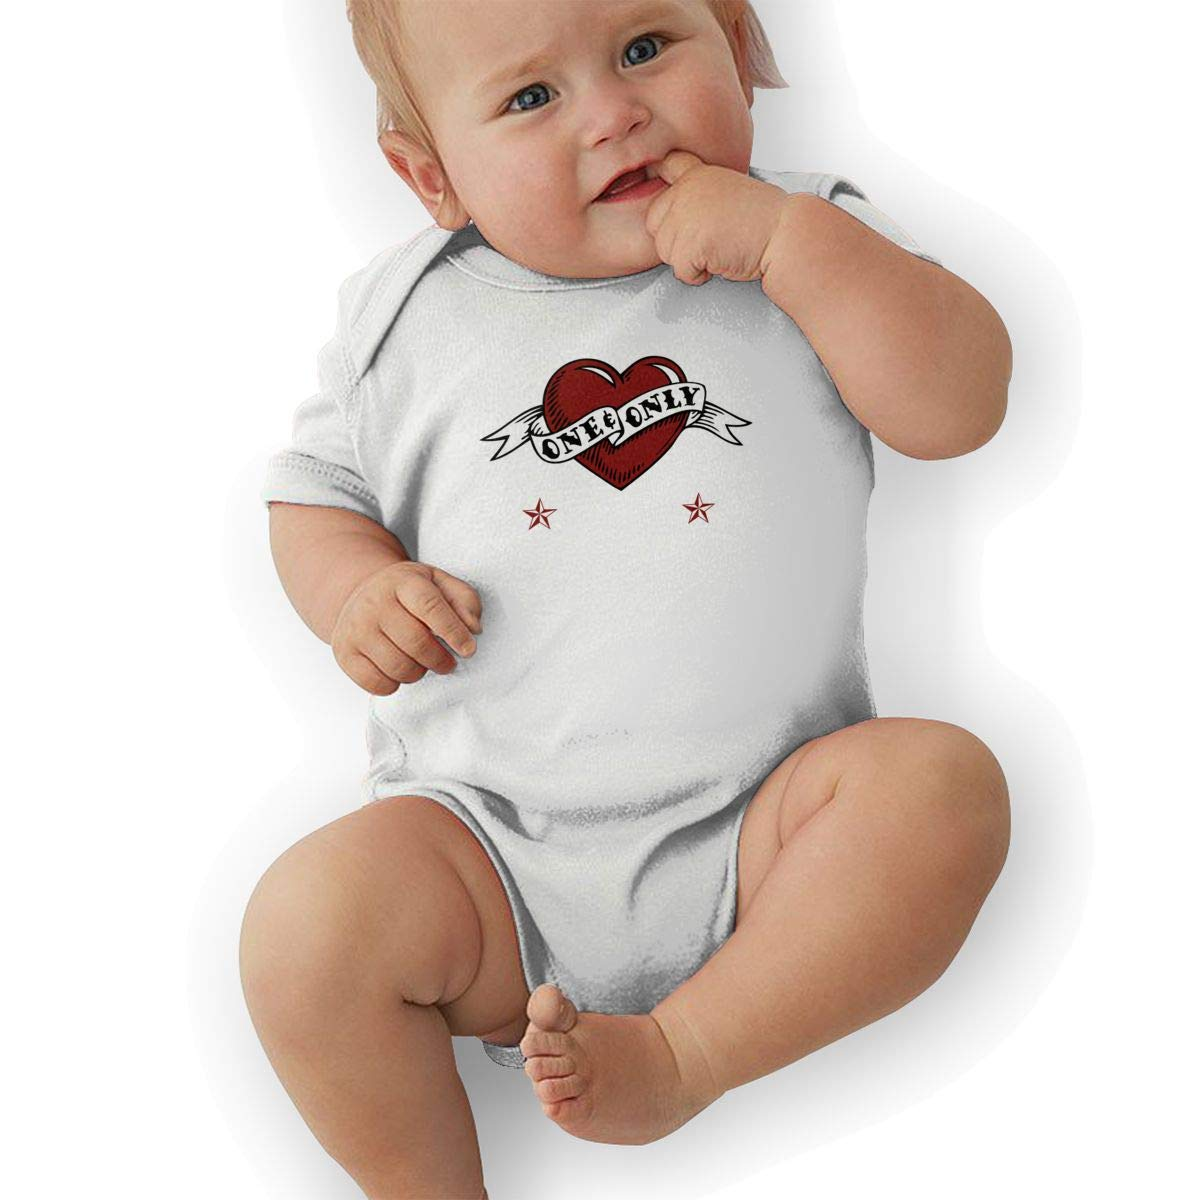 Infant Baby Girls Bodysuit Short-Sleeve Onesie One /& Only BBQ Print Outfit Summer Pajamas